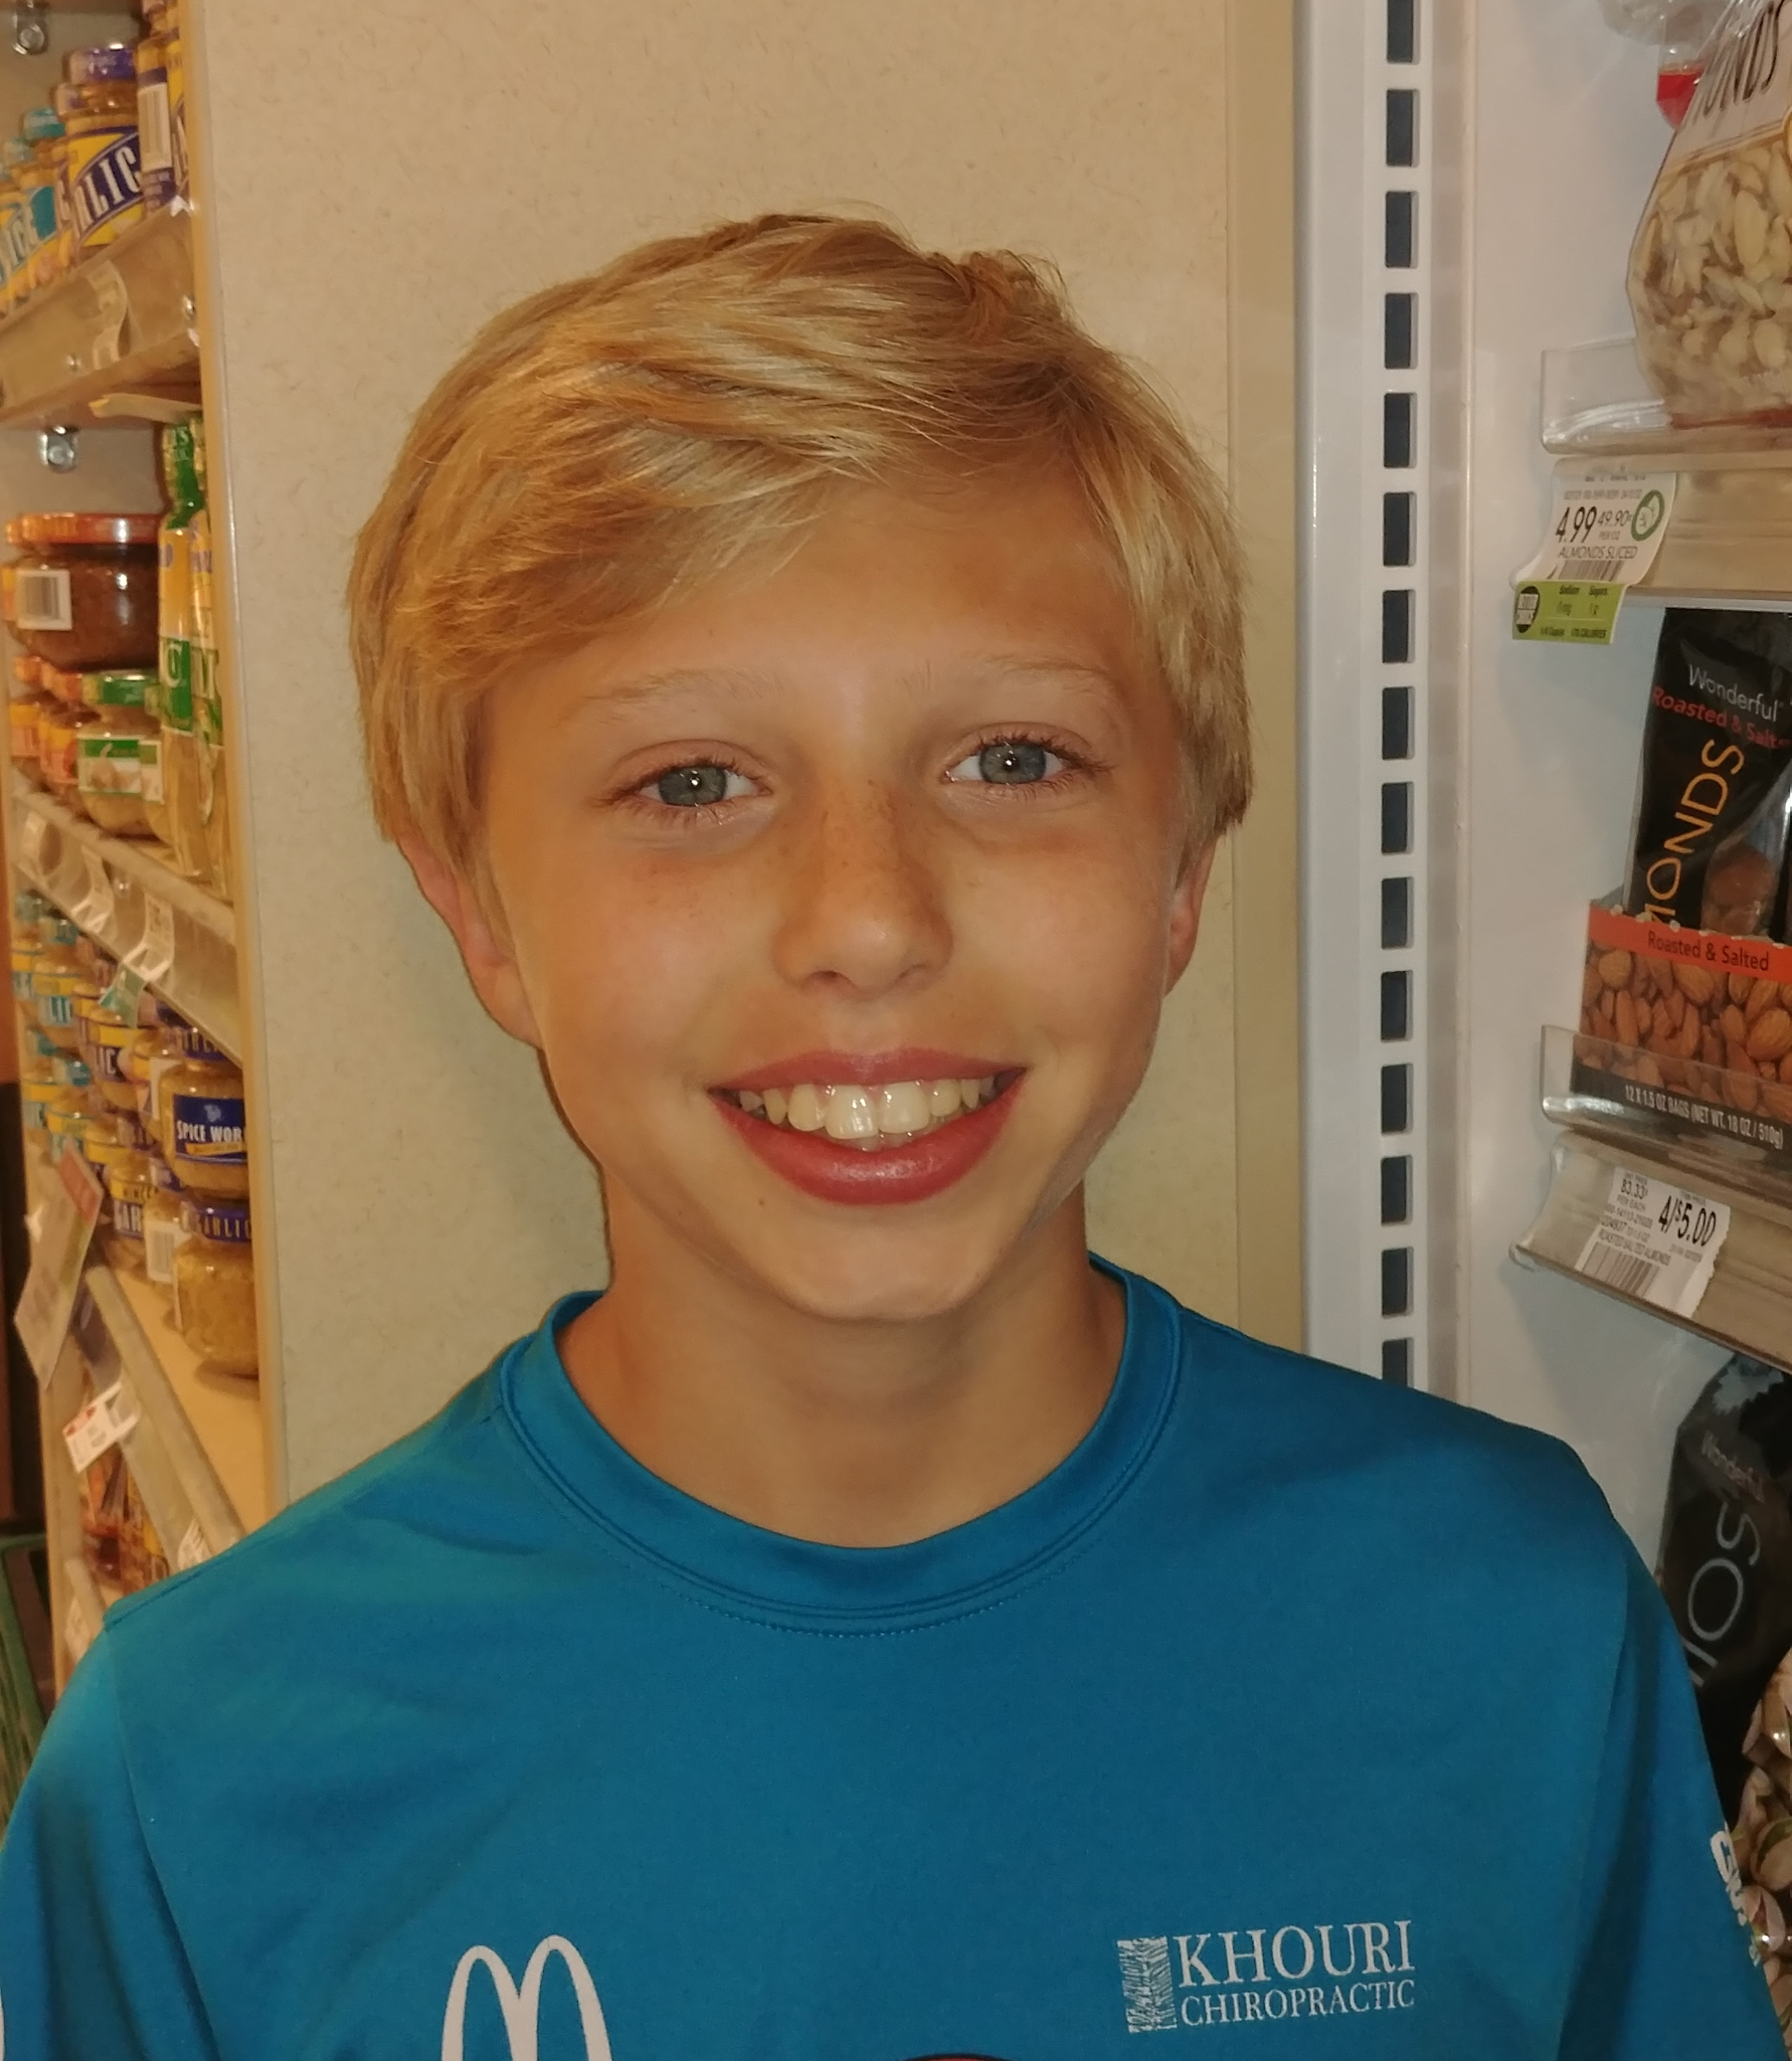 A forensic scientist because I like to investigate crime scenes.  Matthew  Age 11